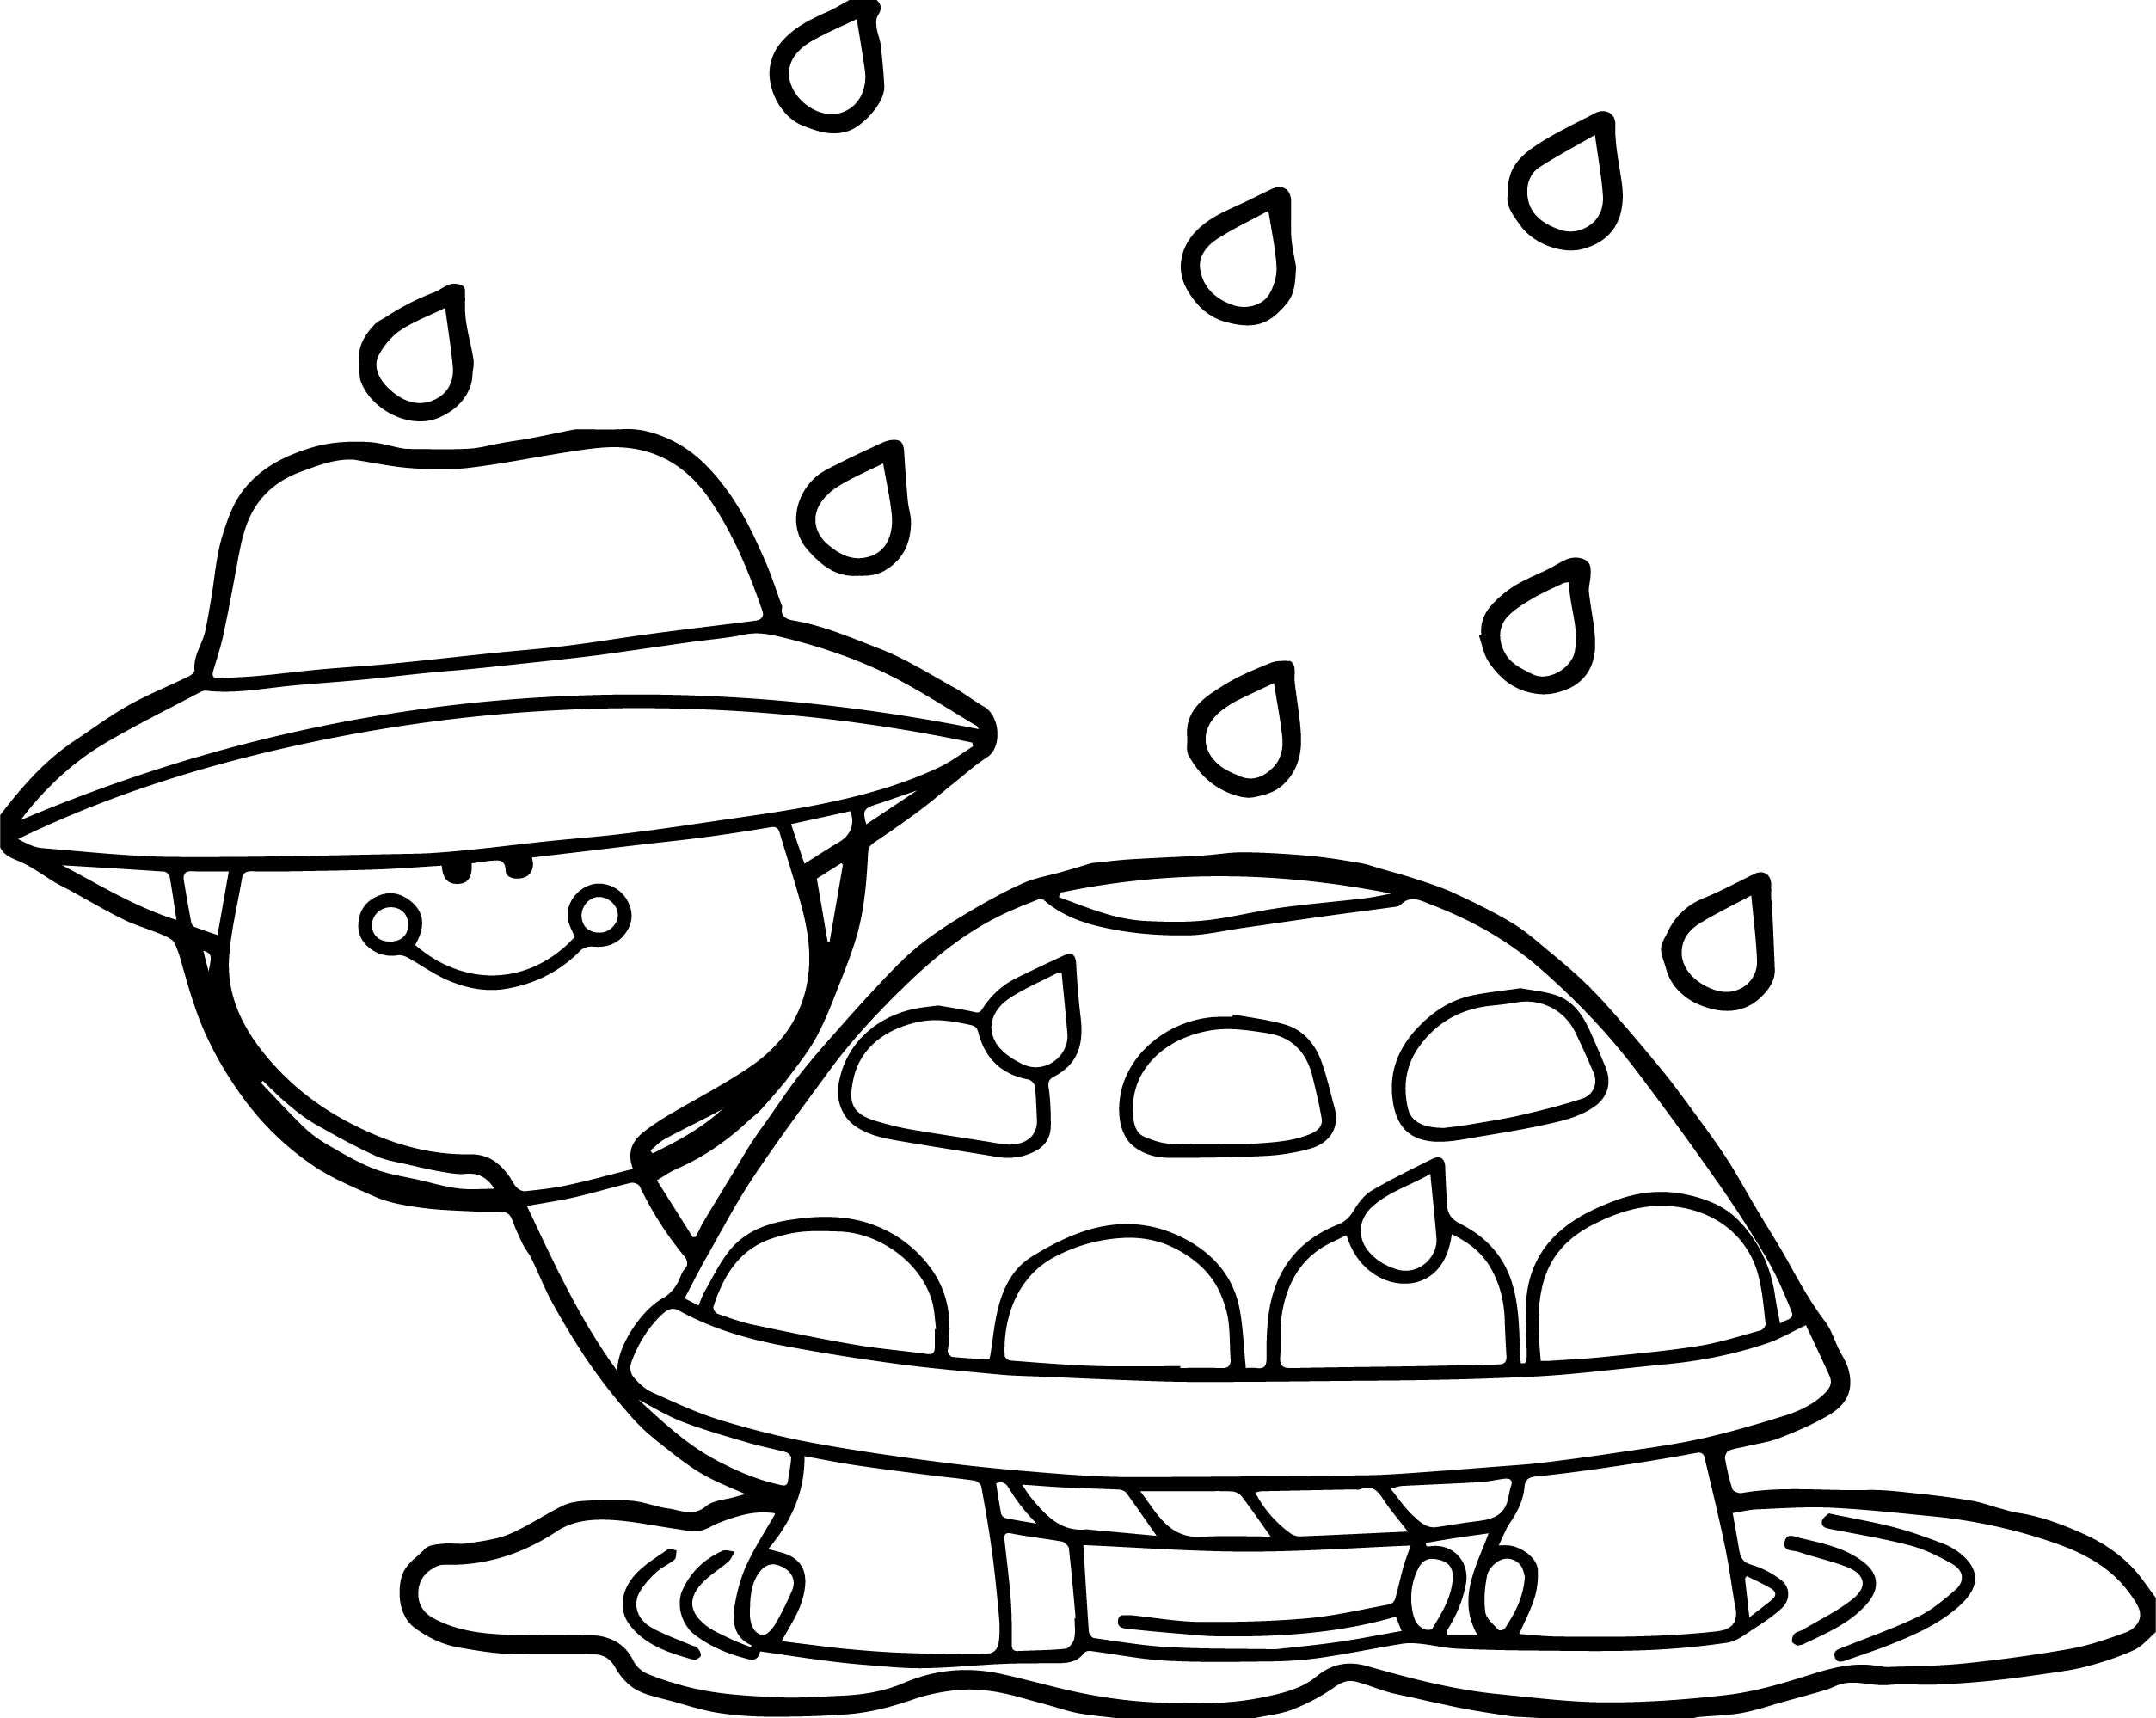 2507x1998 Film School Coloring Pages Printable Pictures To Color Free